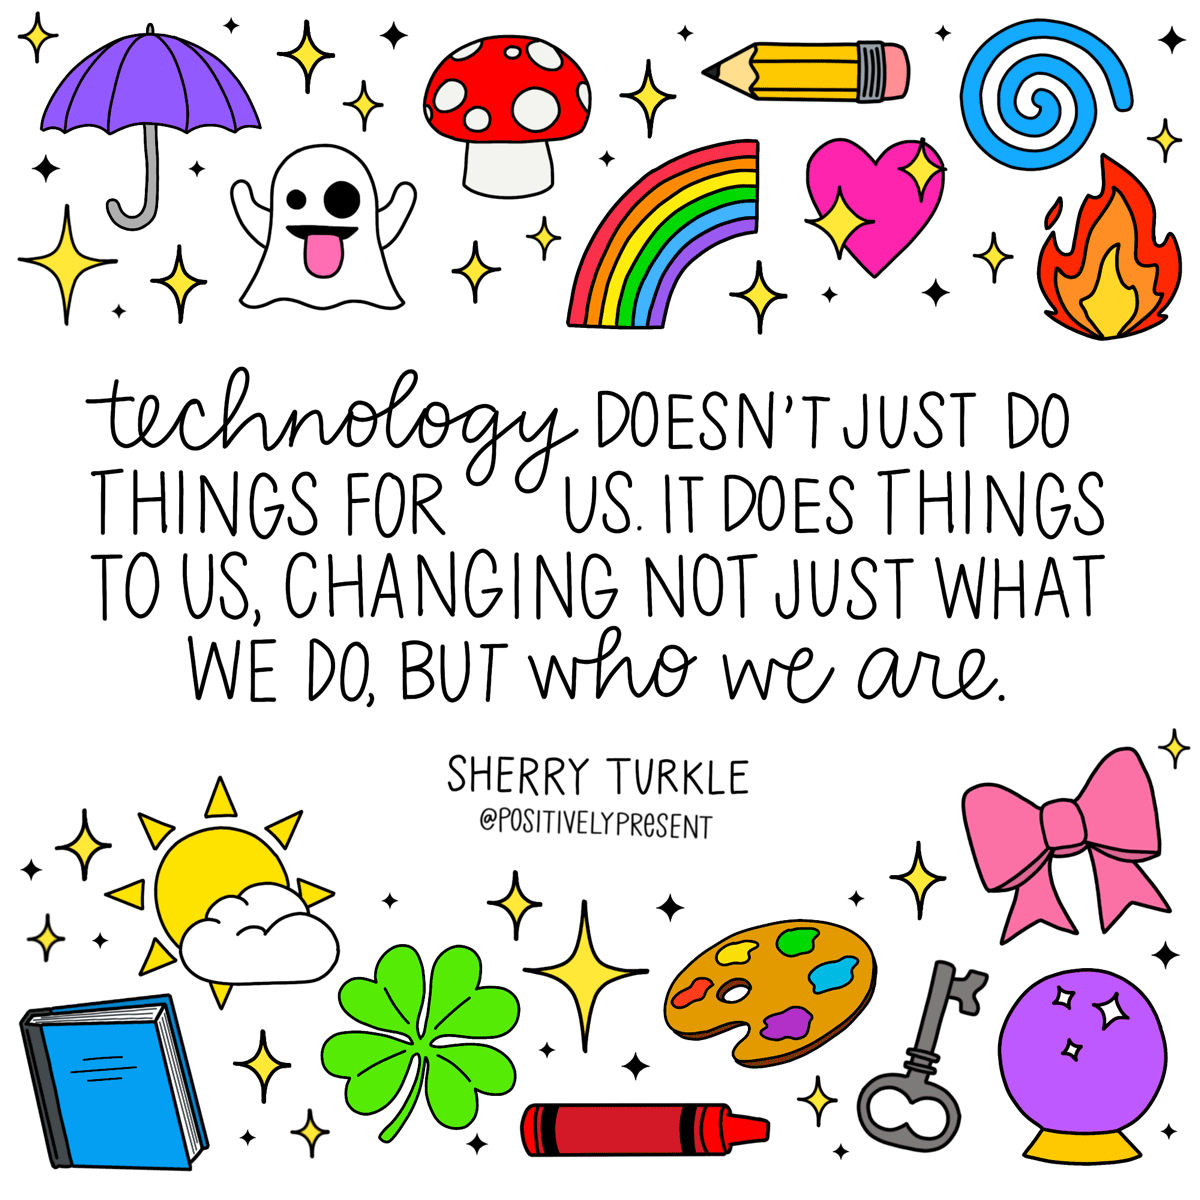 technology changes us quote with cute icons.